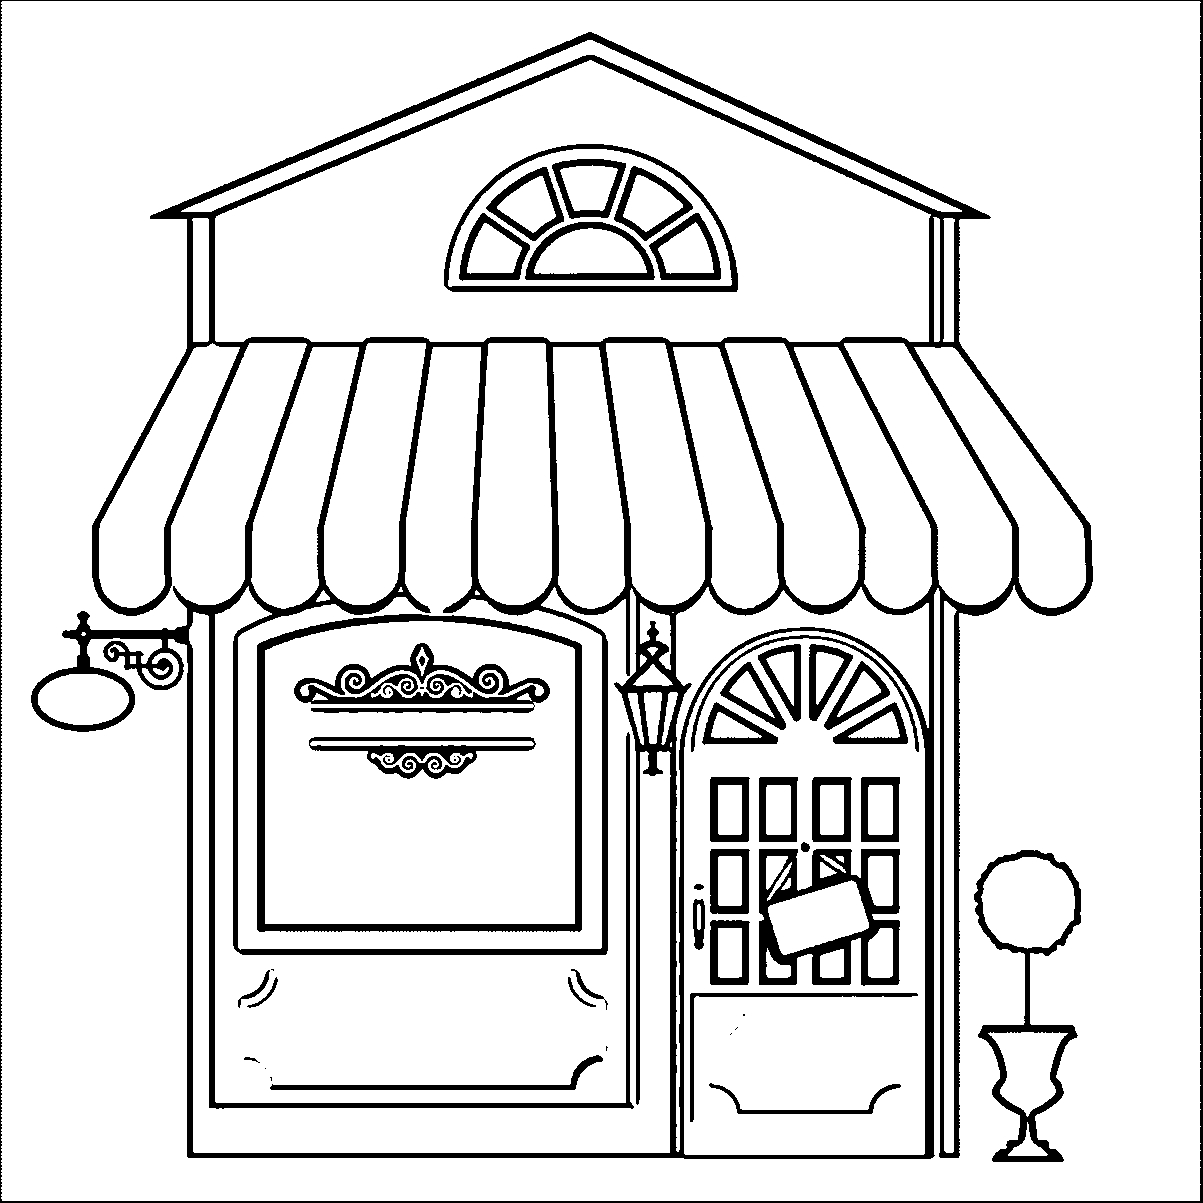 interactive coloring pages for adults - apartment building coloring page